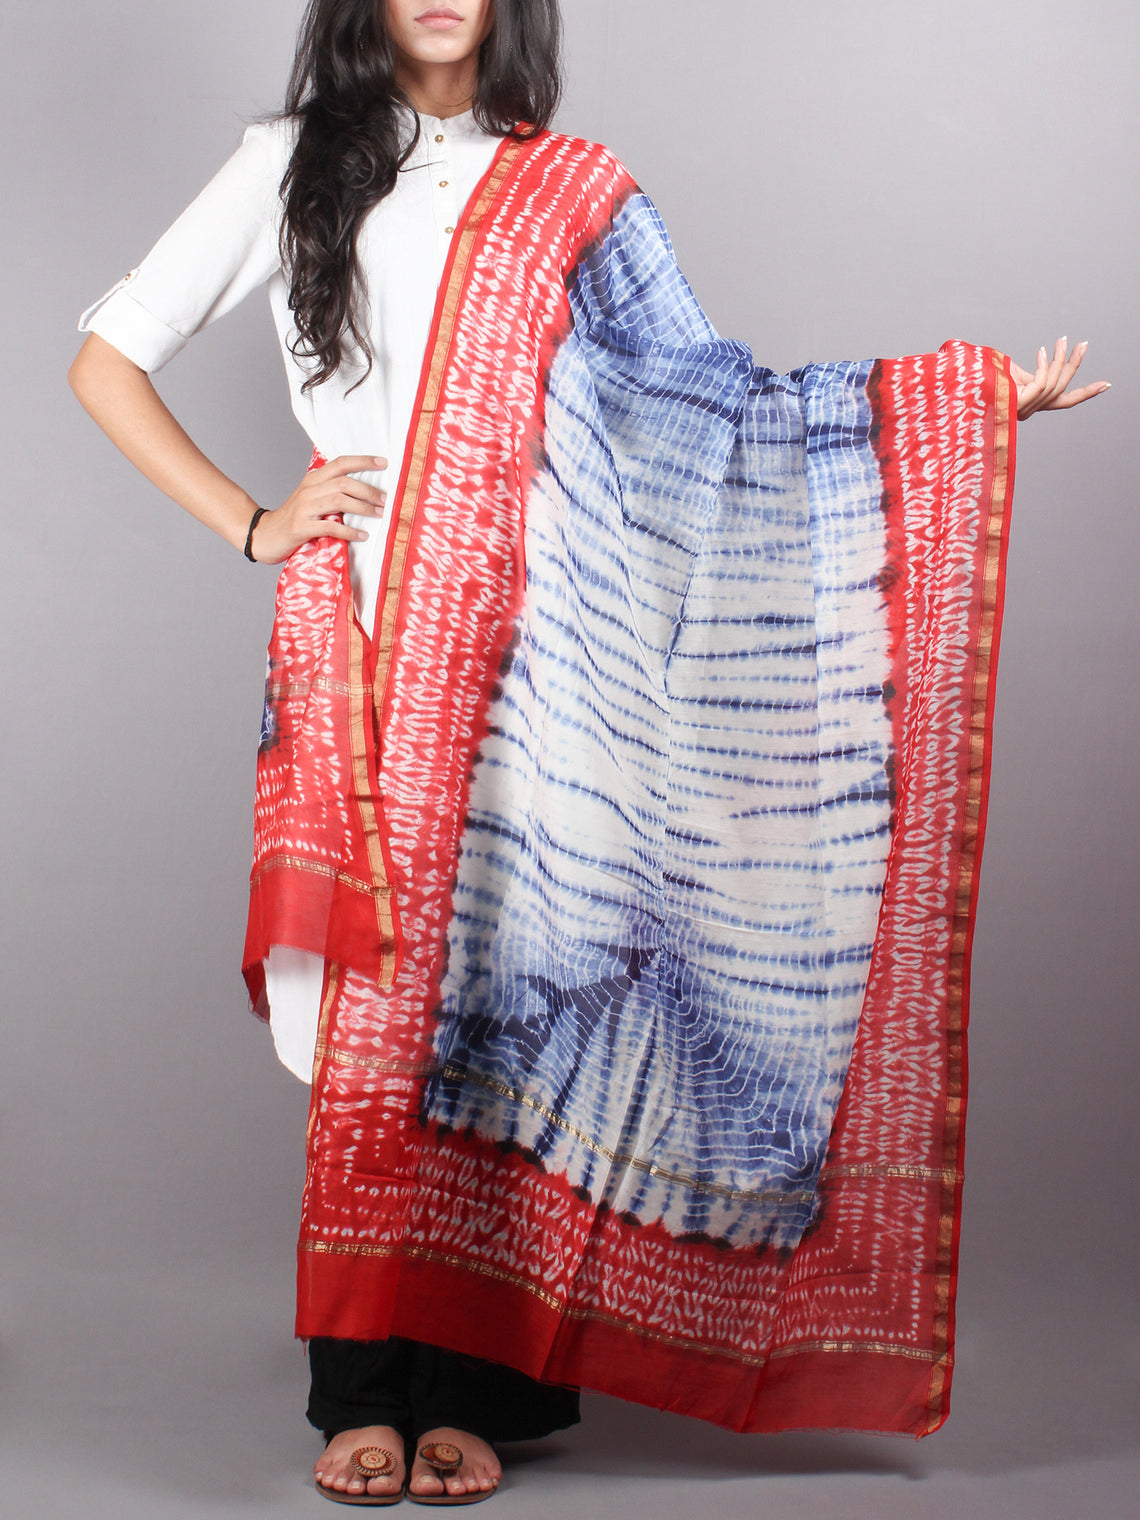 Indigo Red Chanderi Shibori Dyed in Natural Colors Dupatta with Bandani Touch- D0417049